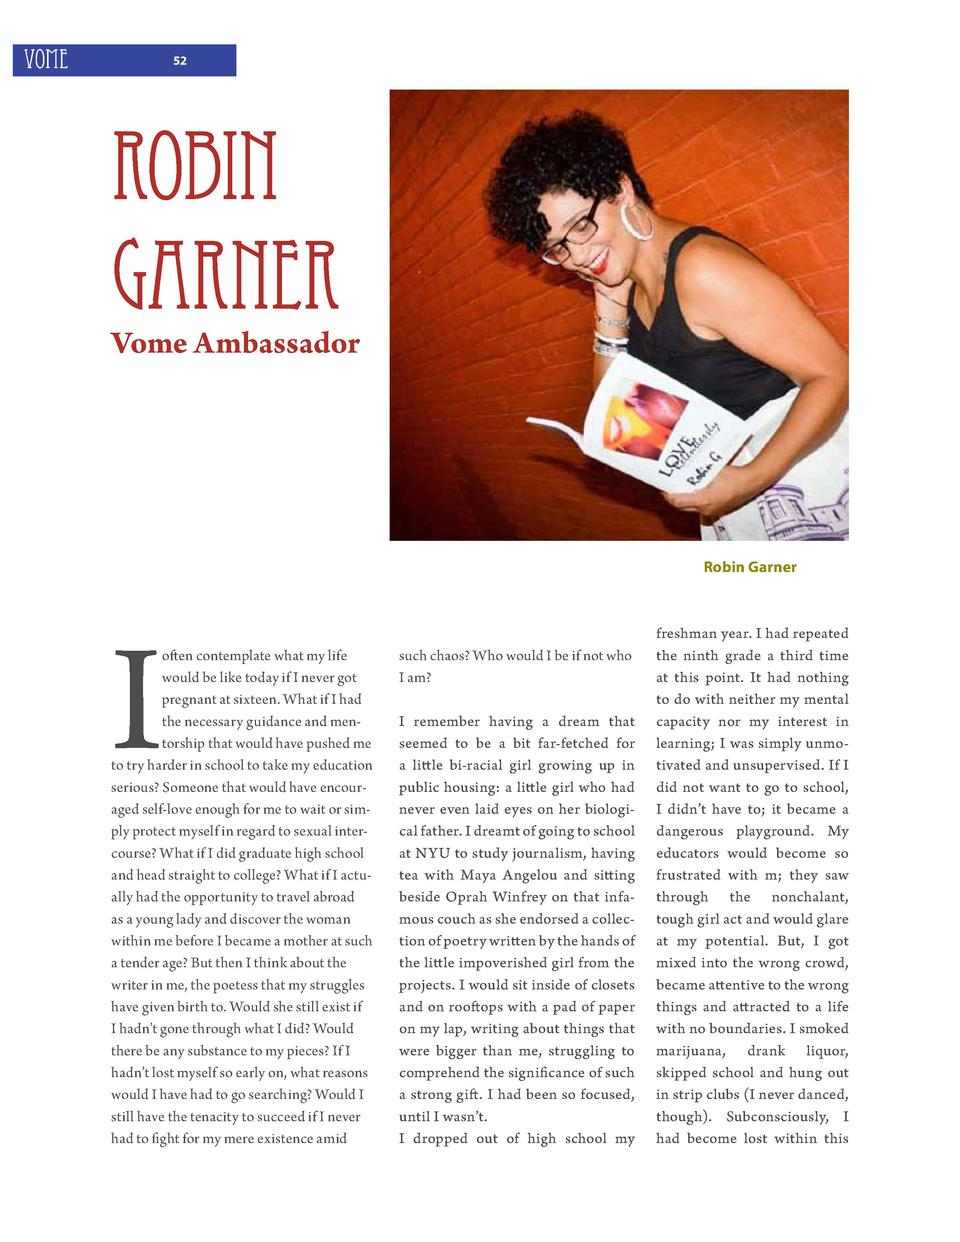 VOME  52  Robin Garner  Vome Ambassador  Robin Garner  I  often contemplate what my life would be like today if I never go...